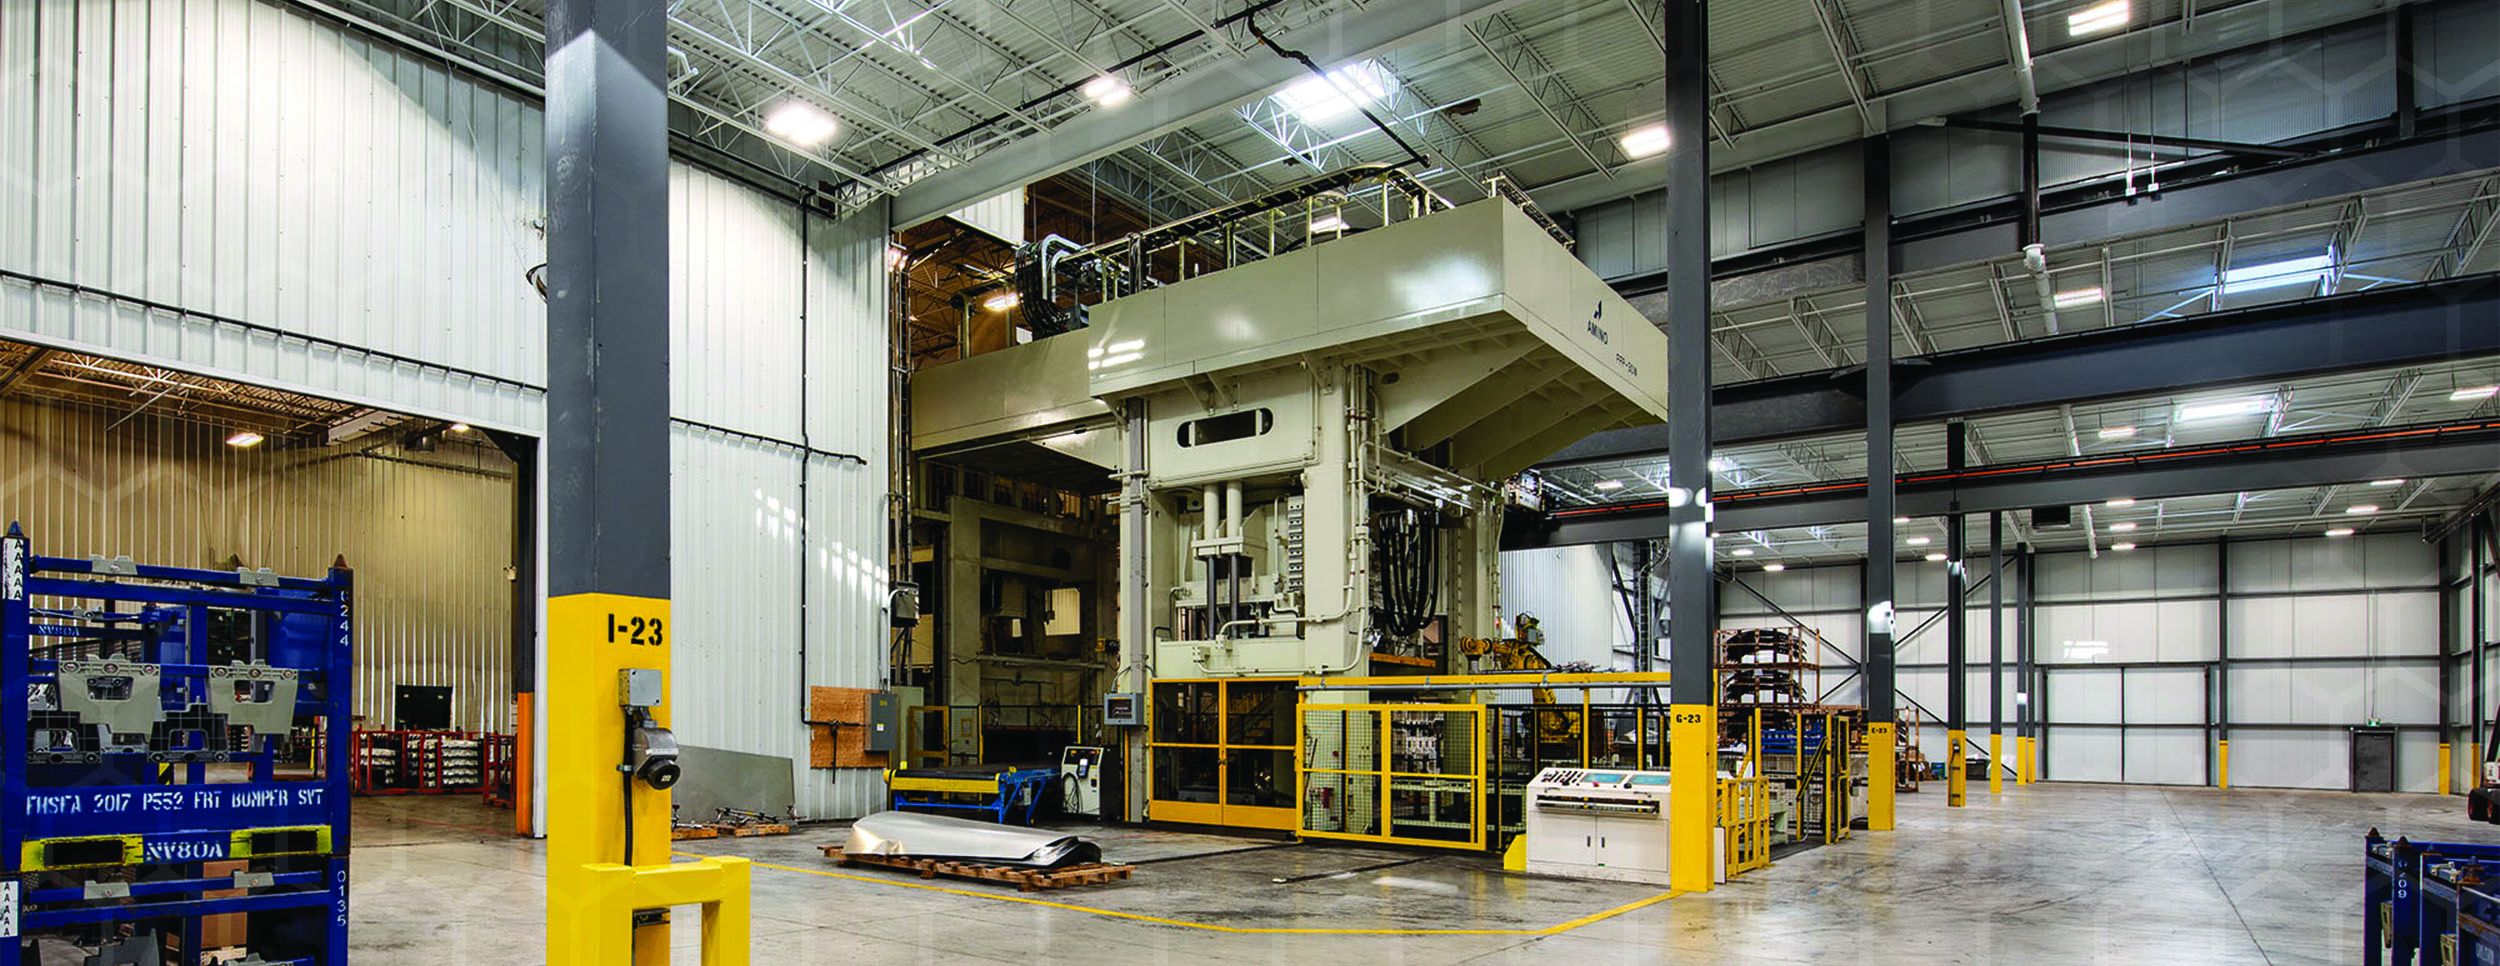 Interior Photo of Amino Facility showing a large floor to ceiling industrial press